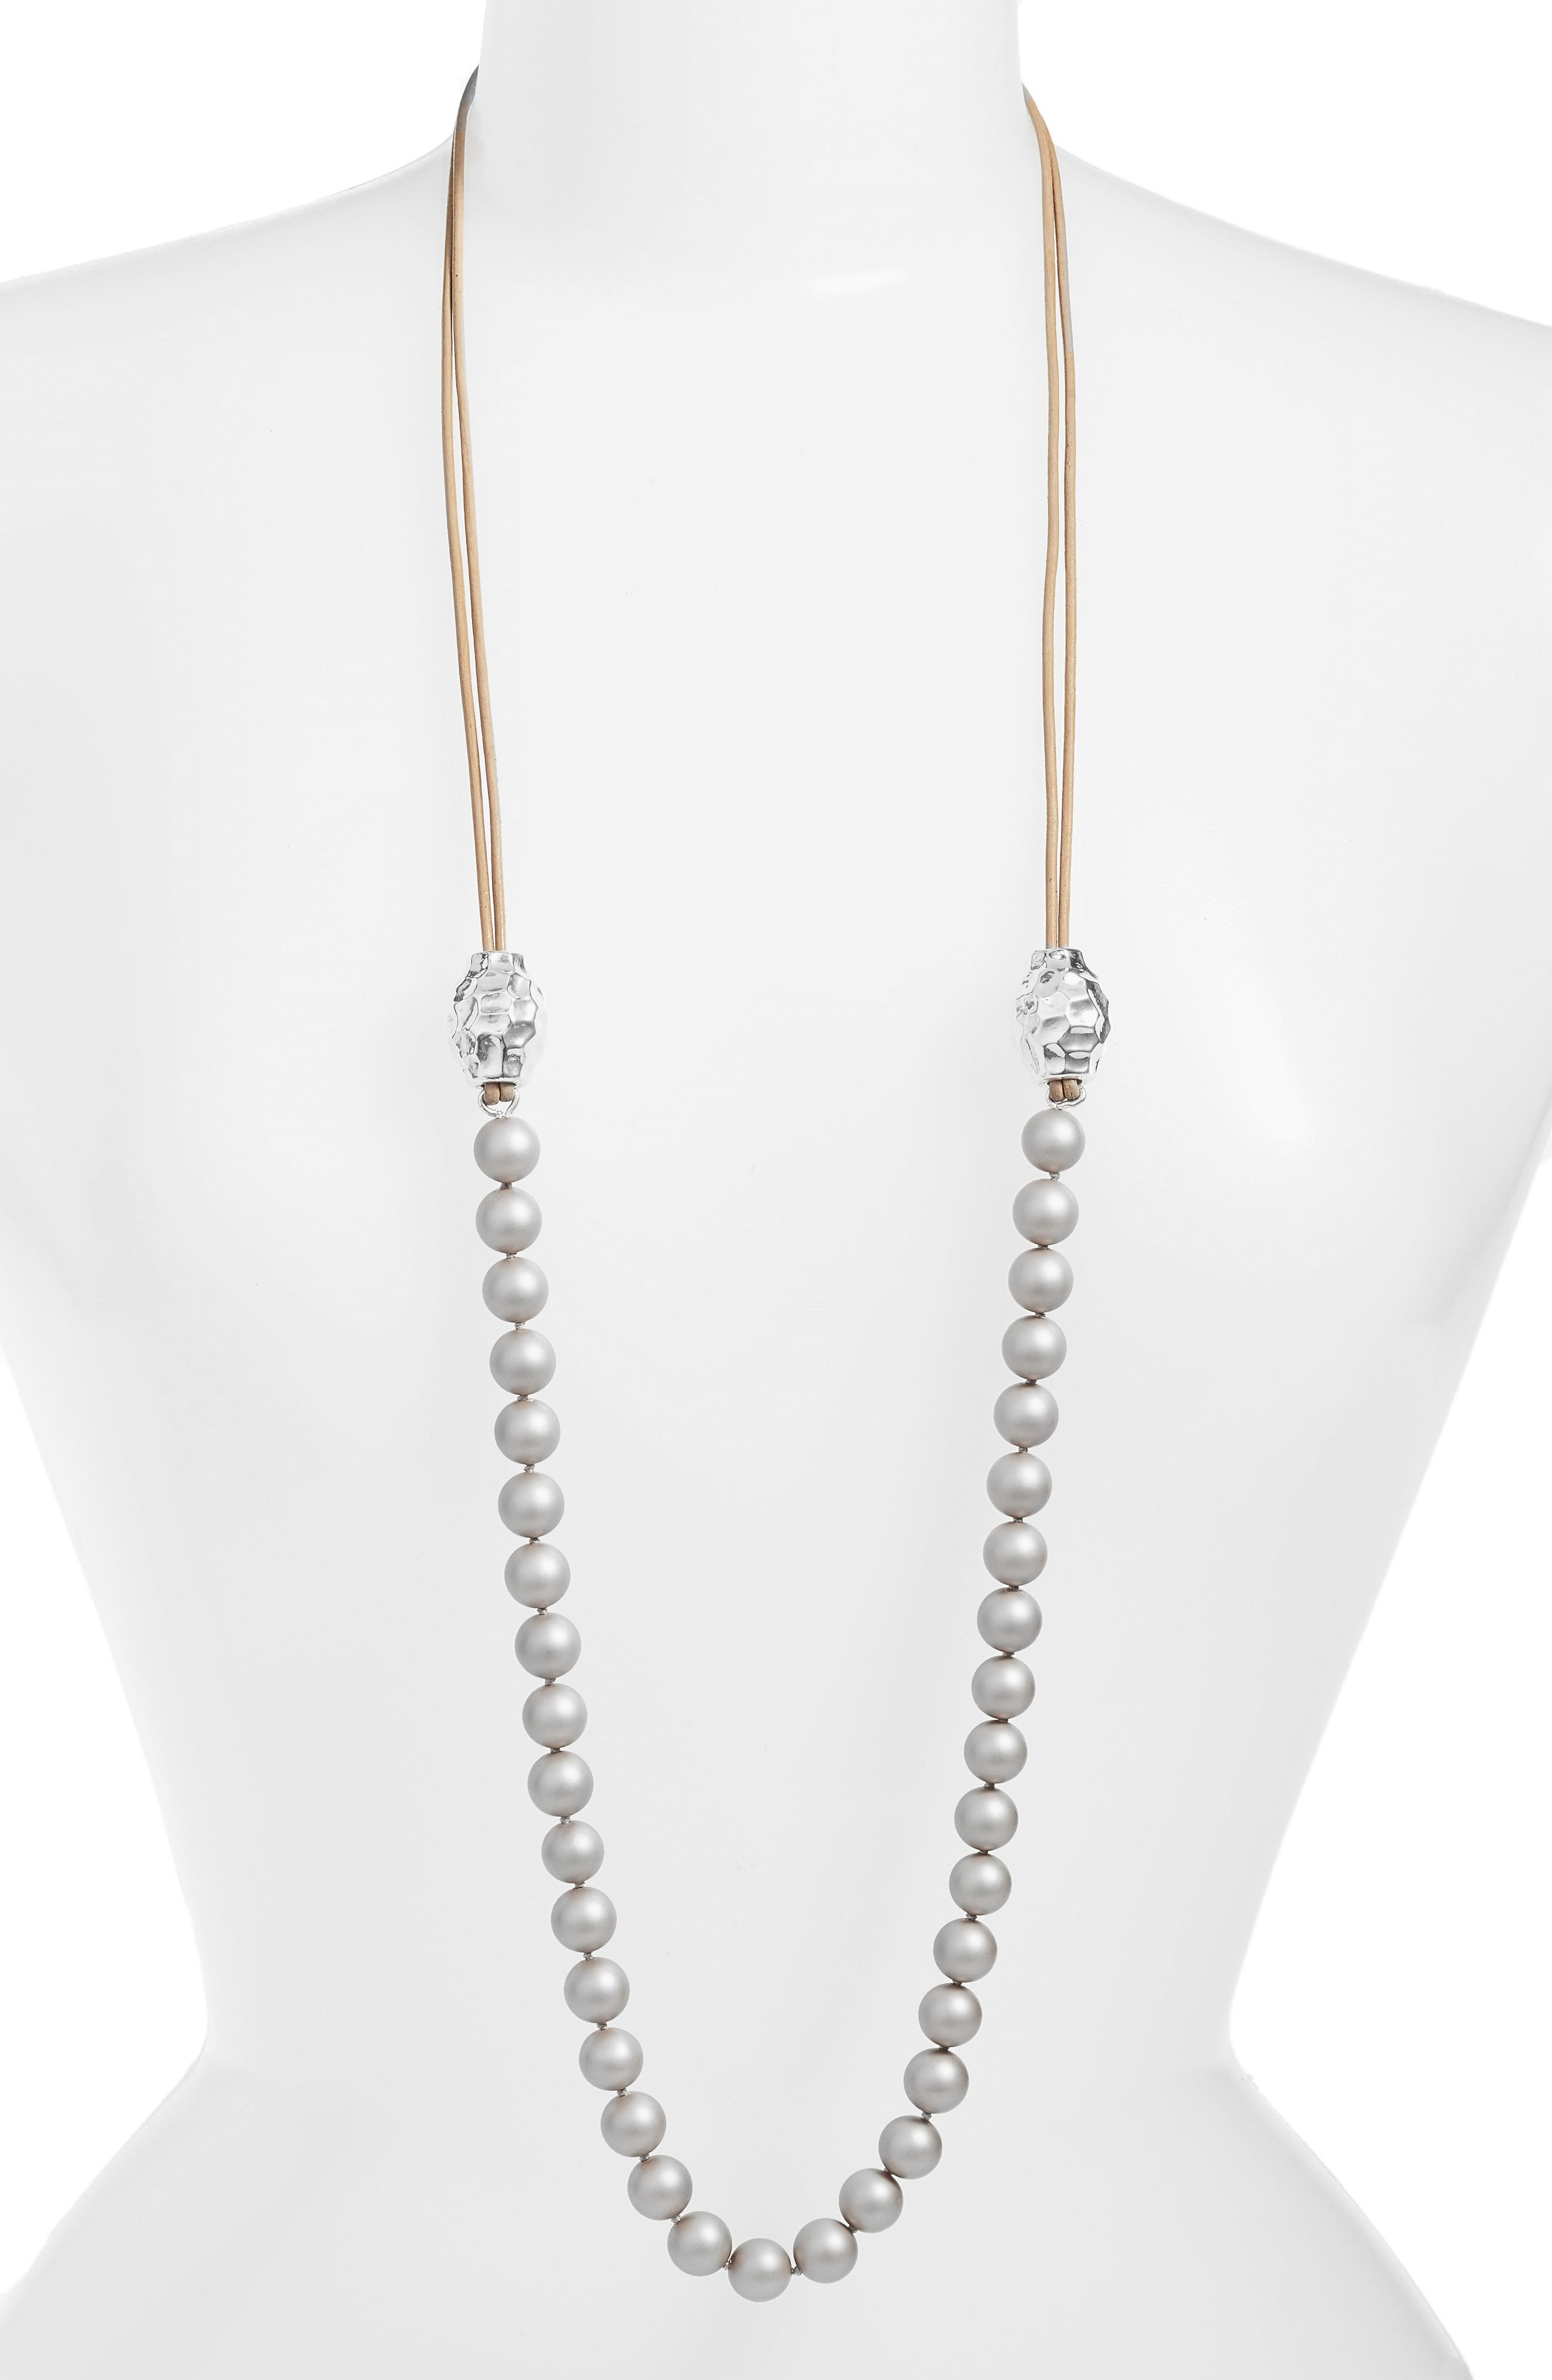 Main Image - Simon Sebbag Imitation Pearl & Sterling Silver Strand Necklace